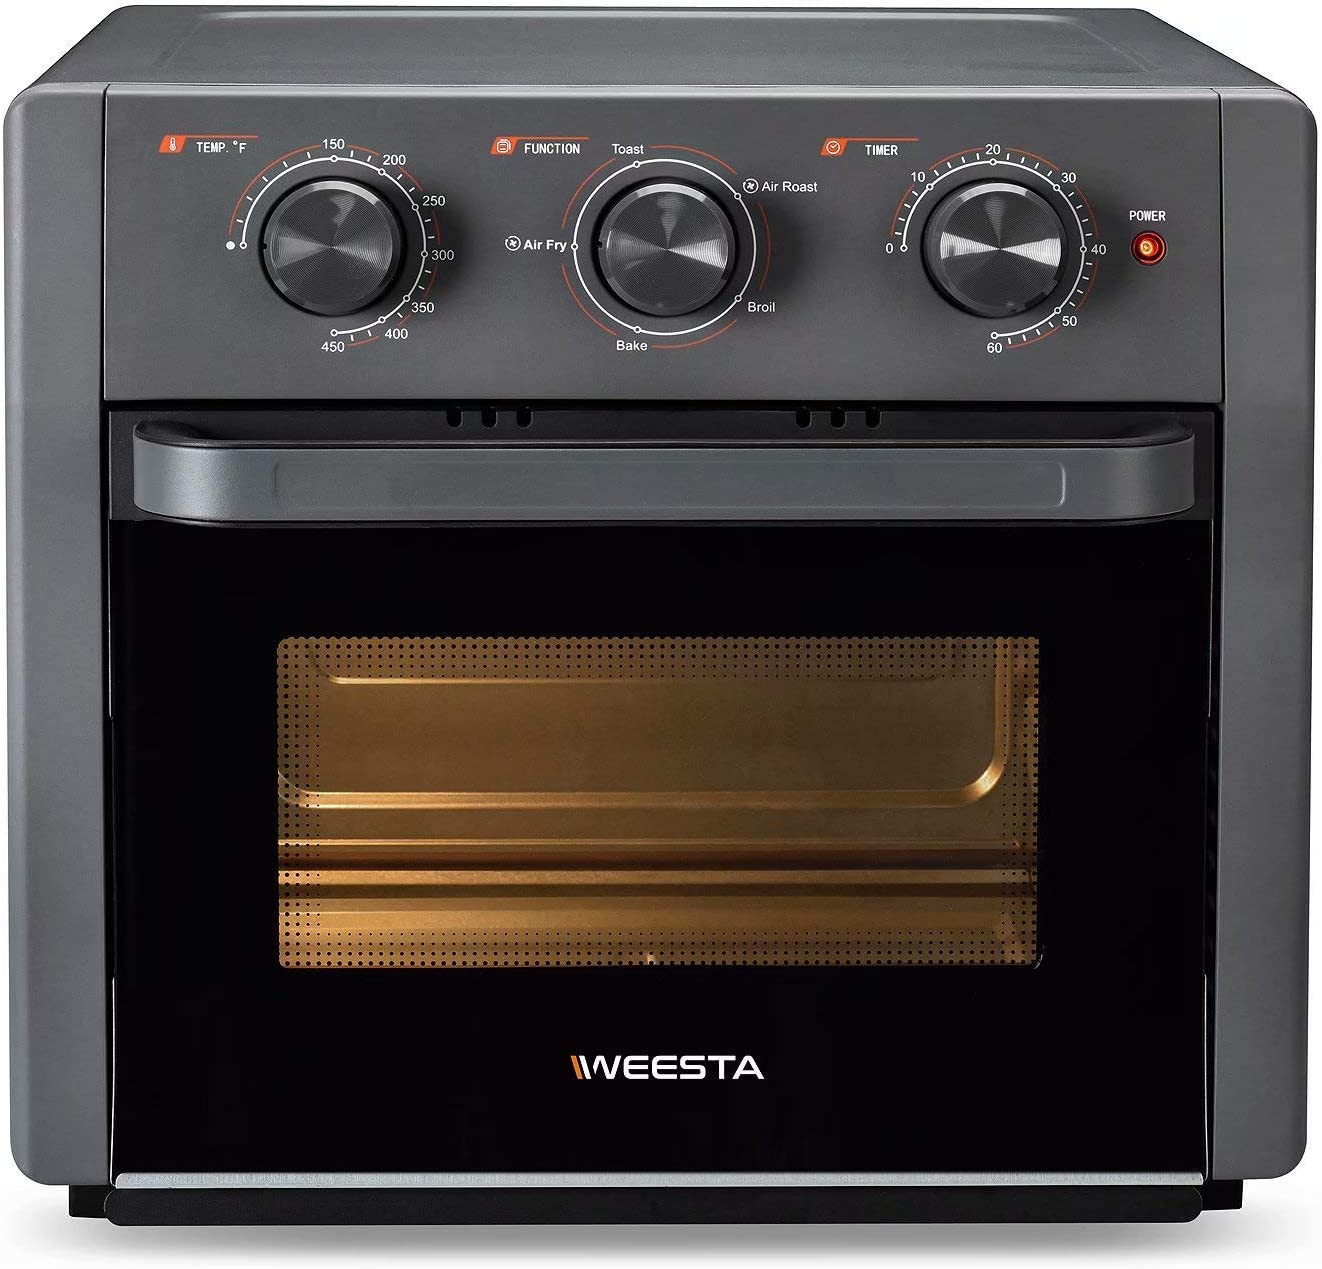 WEESTA 21Quart Air Fryer Toaster Oven Pro,5-IN-1 Countertop Convection Oven with Air Fry Air Roast Toast Broil Bake Function for Fried Chicken, Steak, Fries, Tater Tots, Chips, Bacon, Pizza, etc. (Renewed)